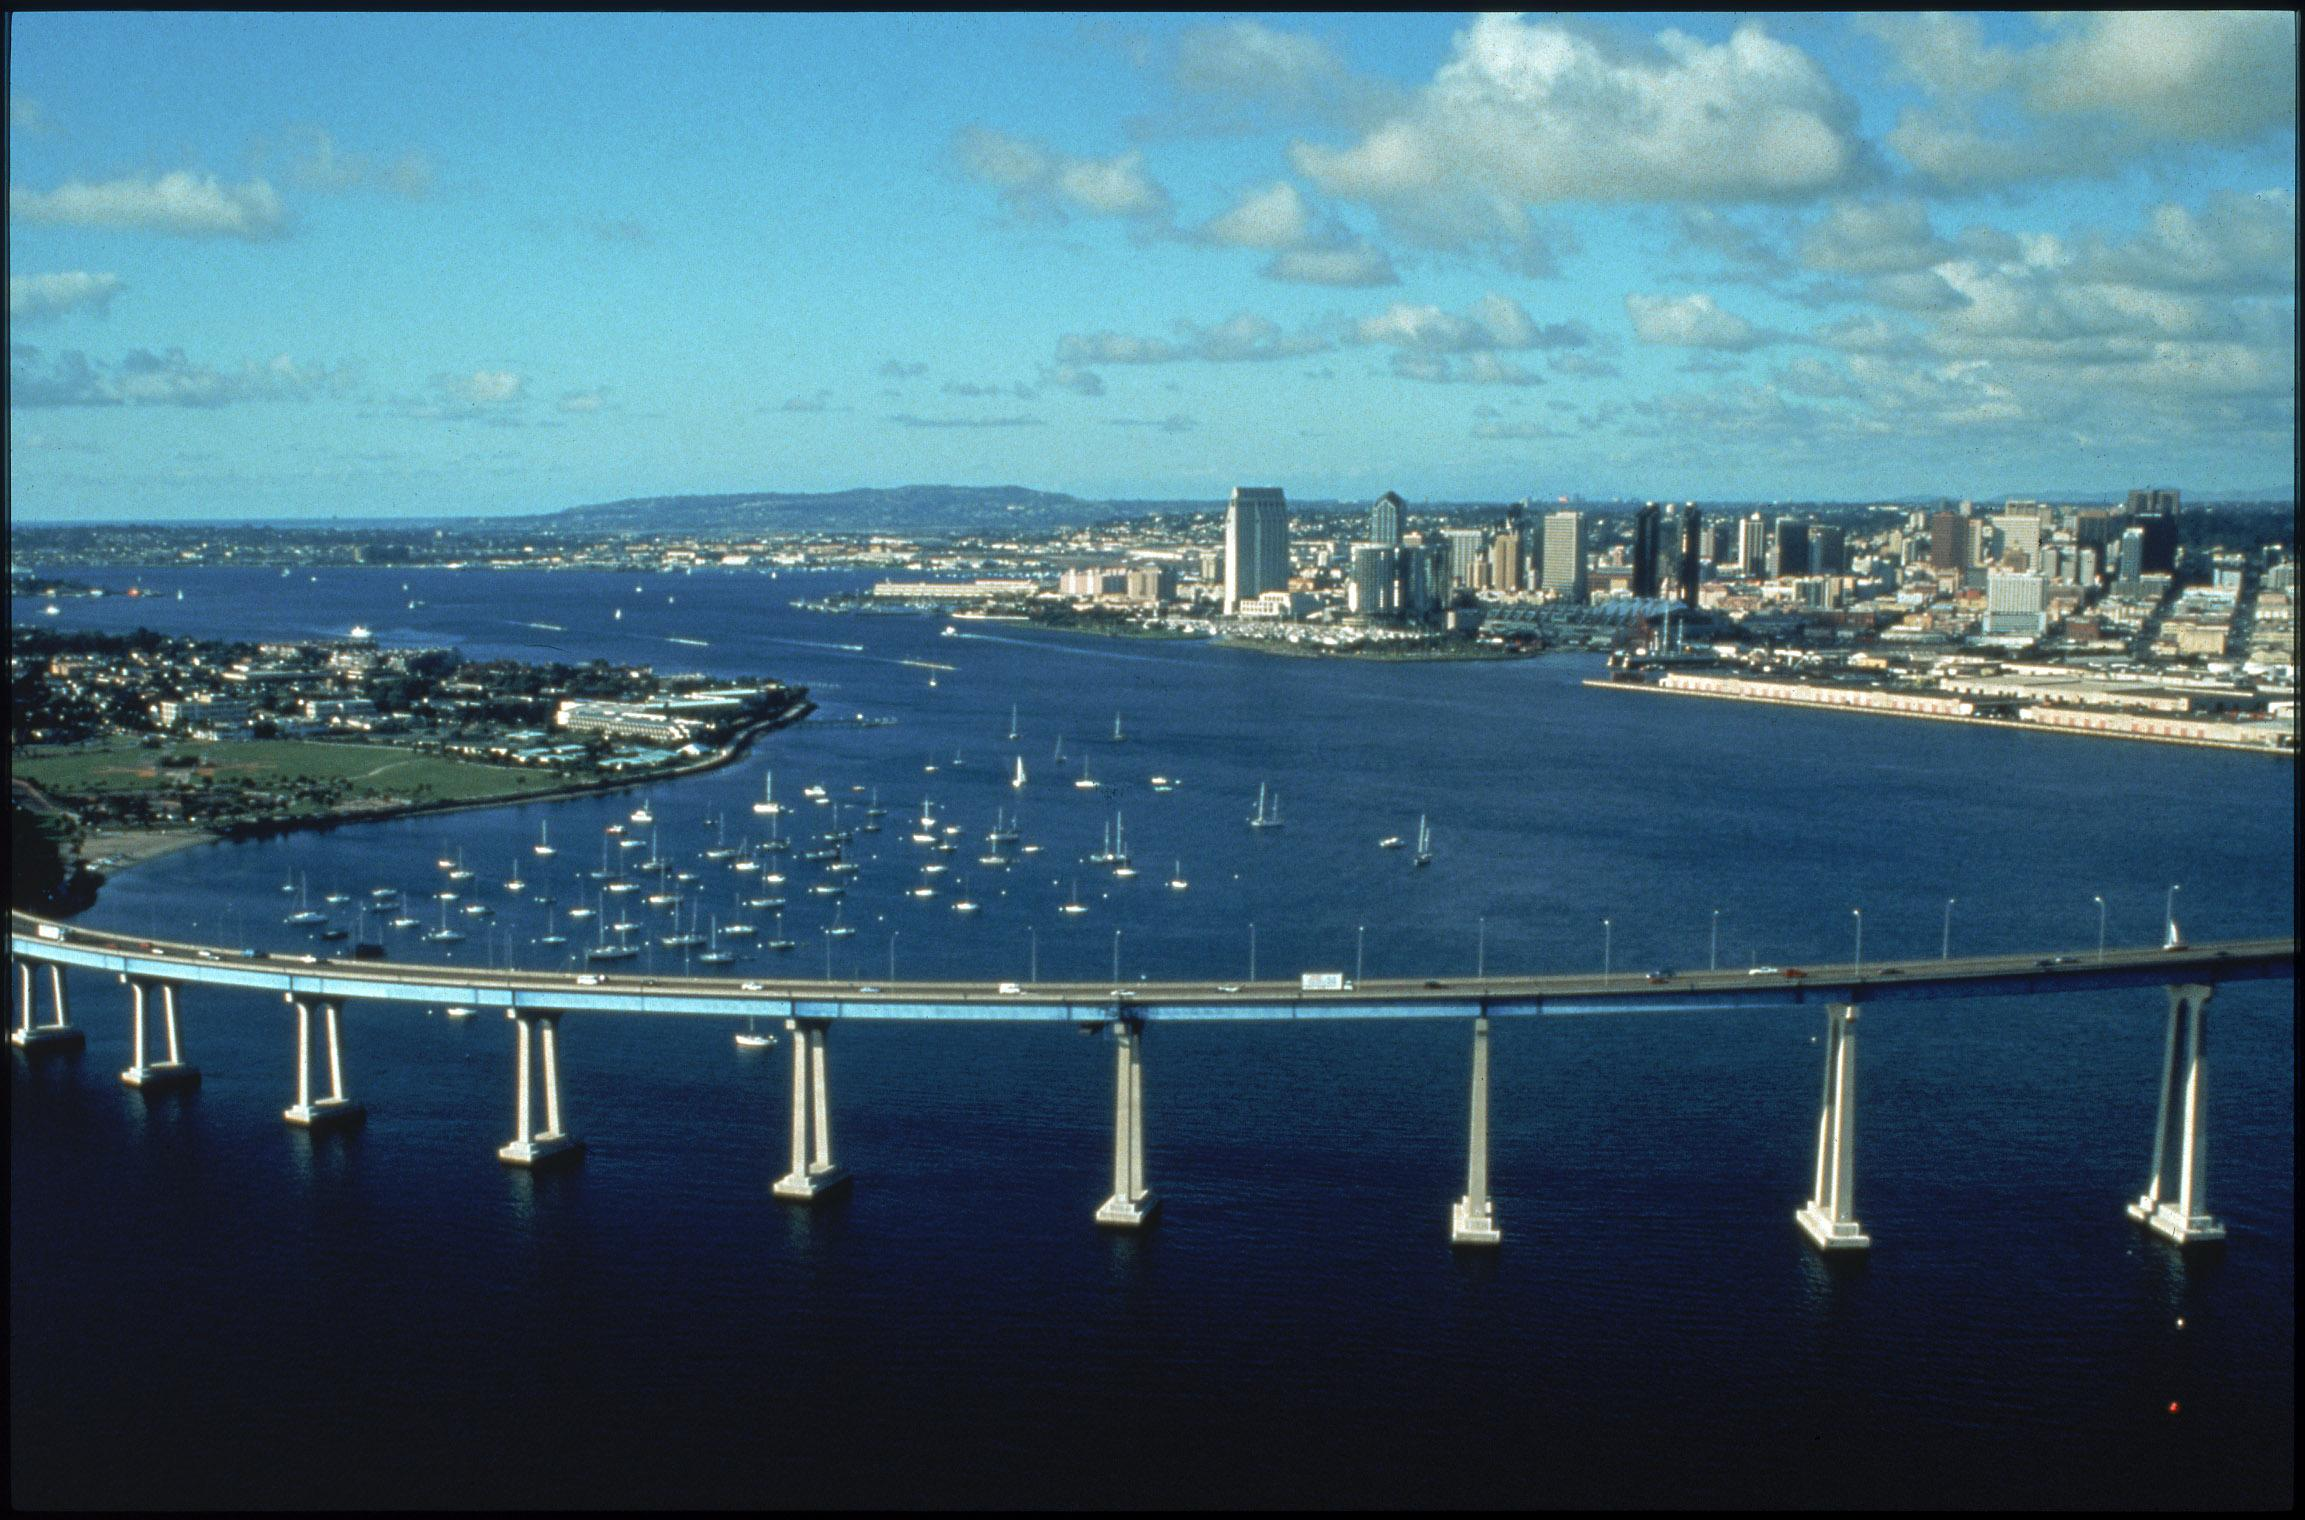 San Diego HD Wallpaper Download 2305x1520